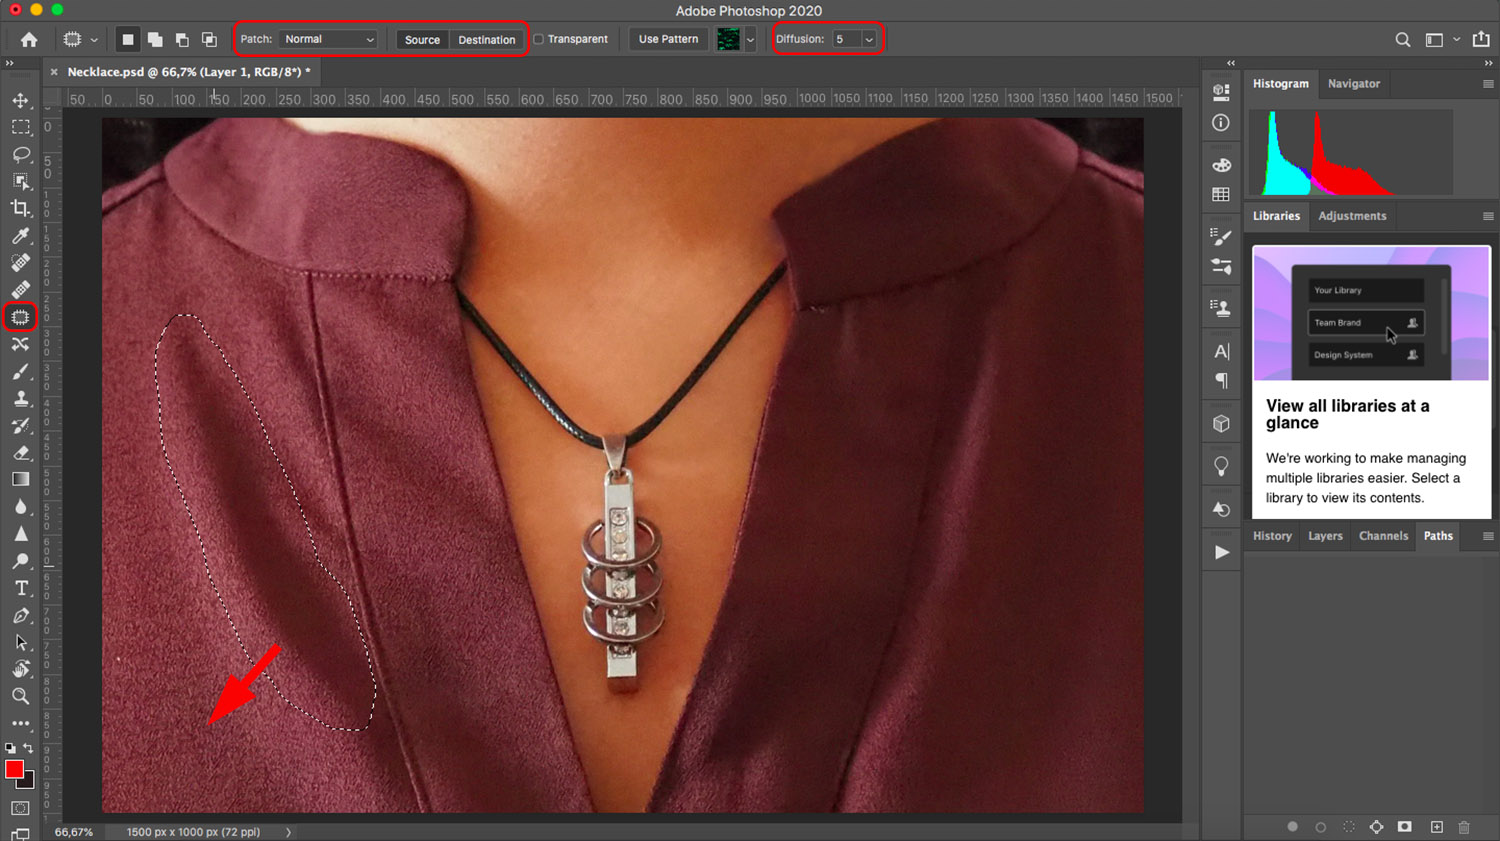 Using the Patch tool to remove wrinkles from clothes in Photoshop